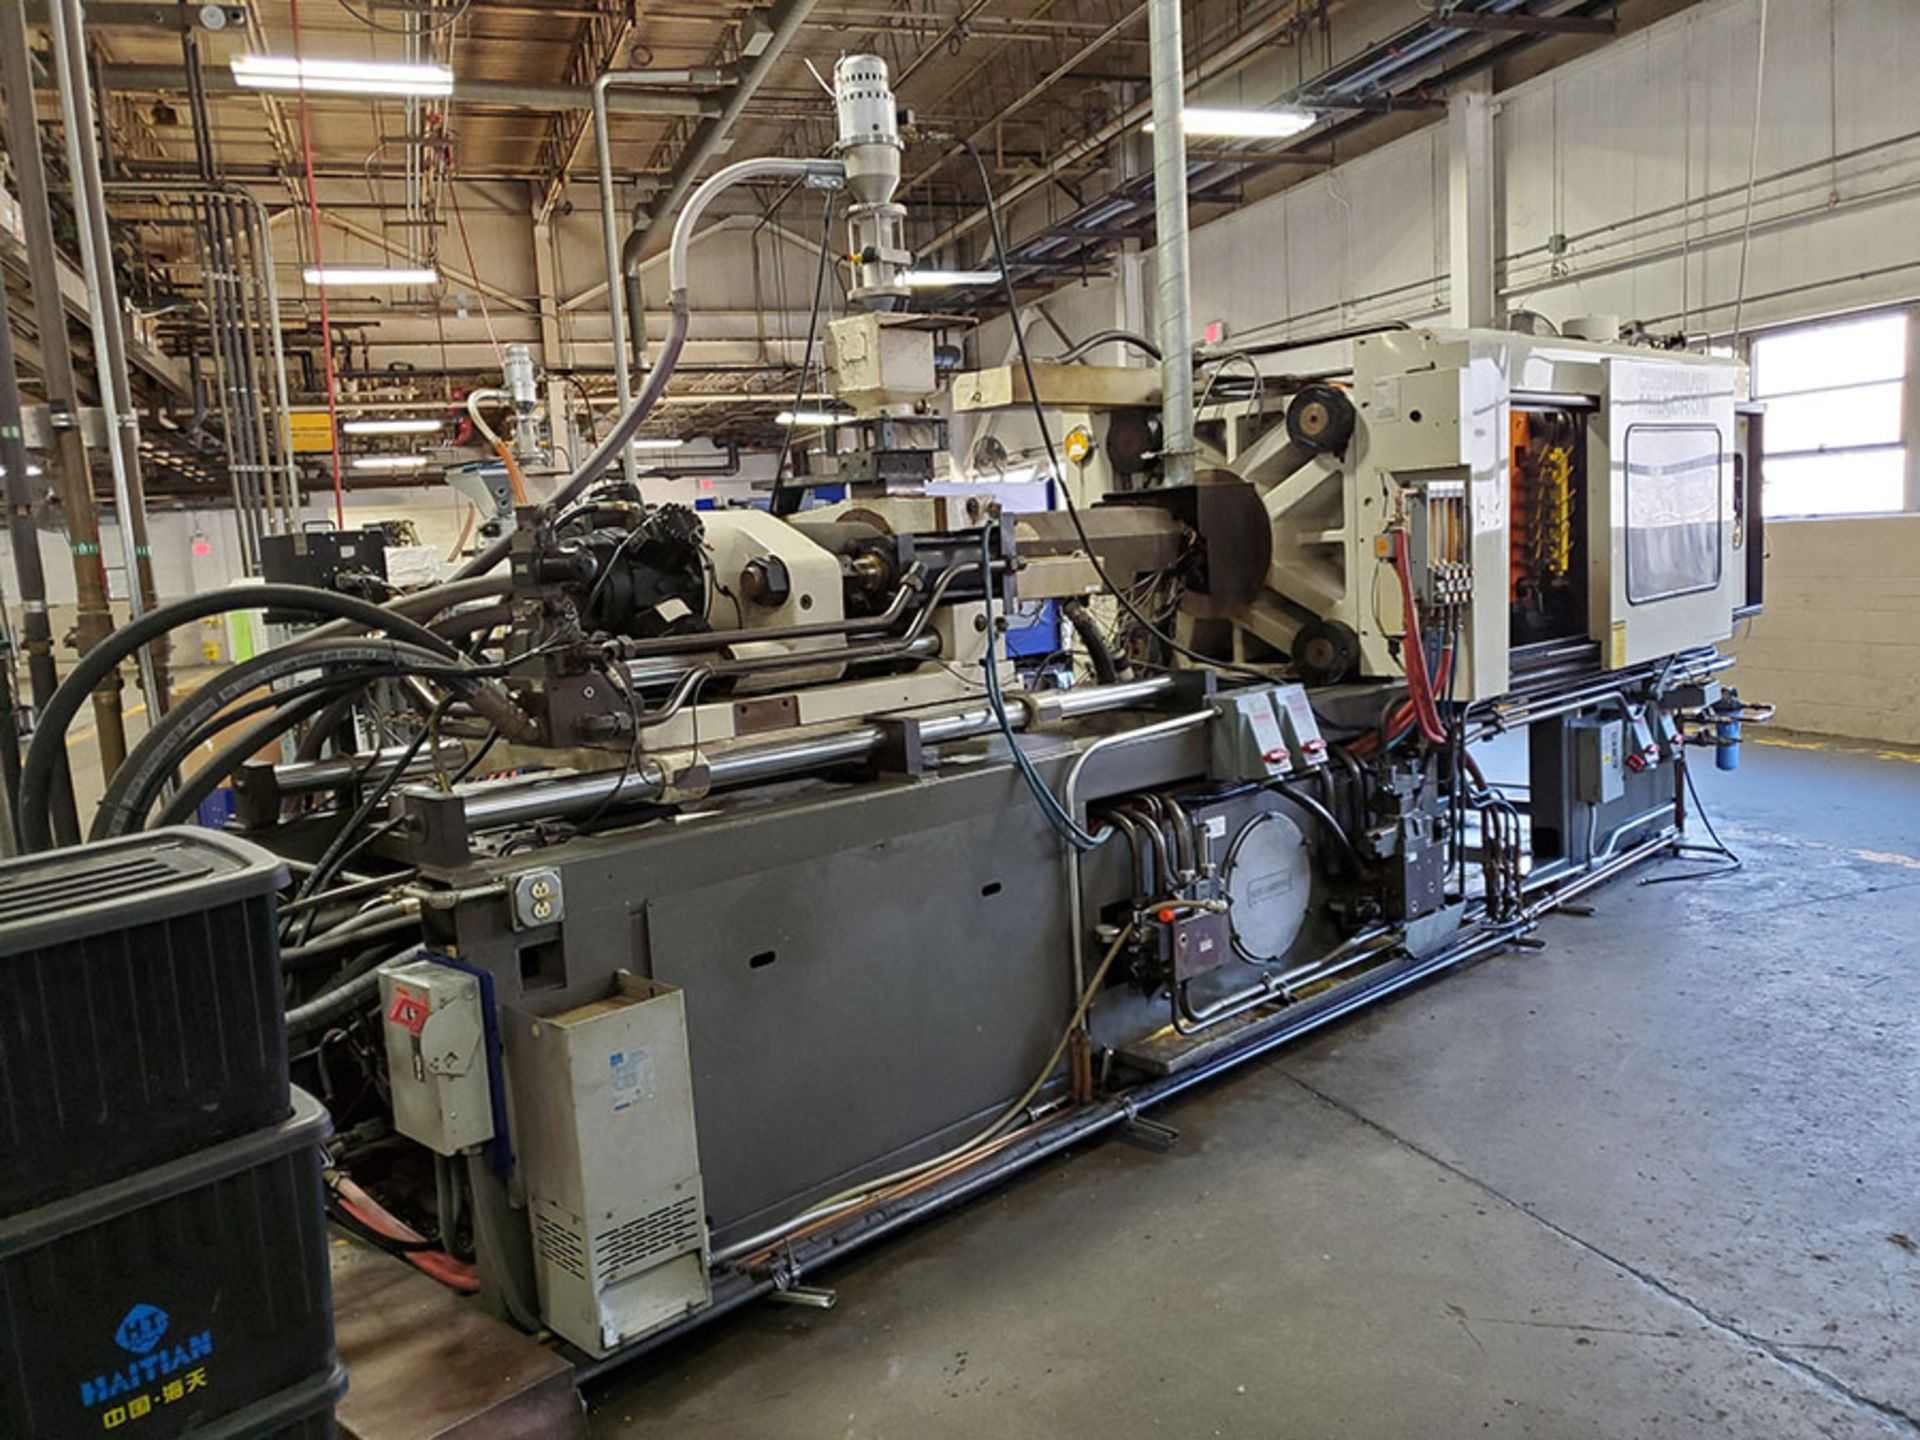 Lot 168 - 1994 CINCINNATI MILACRON 300-TON PLASTIC INJECTION MOLDING MACHINE; MODEL VH-300-21, S/N